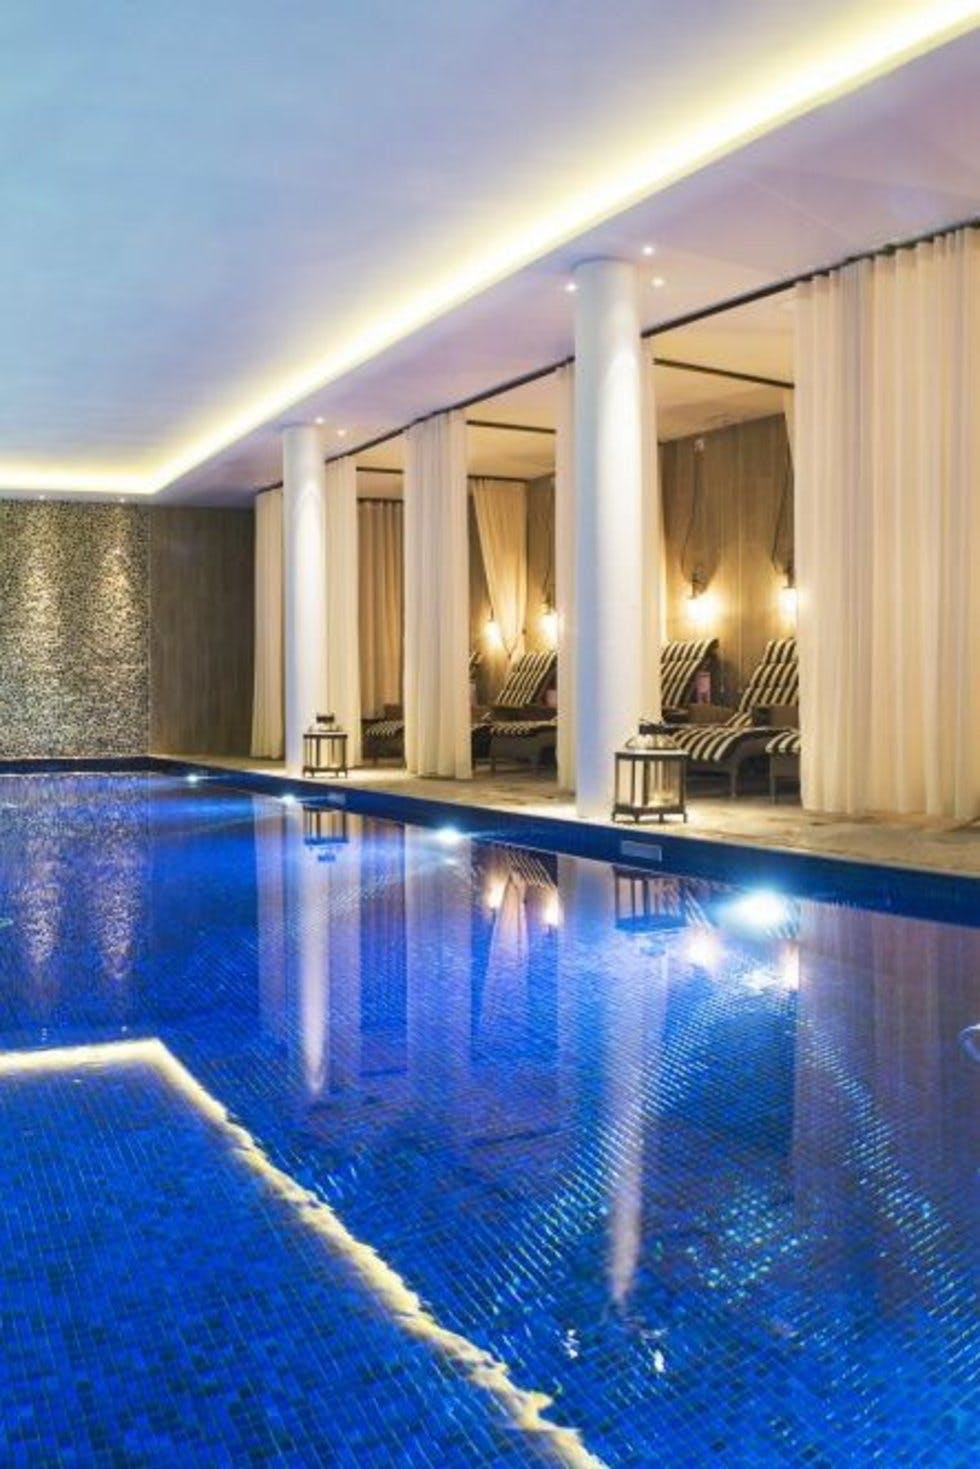 Best Spa Hotel Breaks in the UK: A Guide to the UK\'s Most Luxurious ...